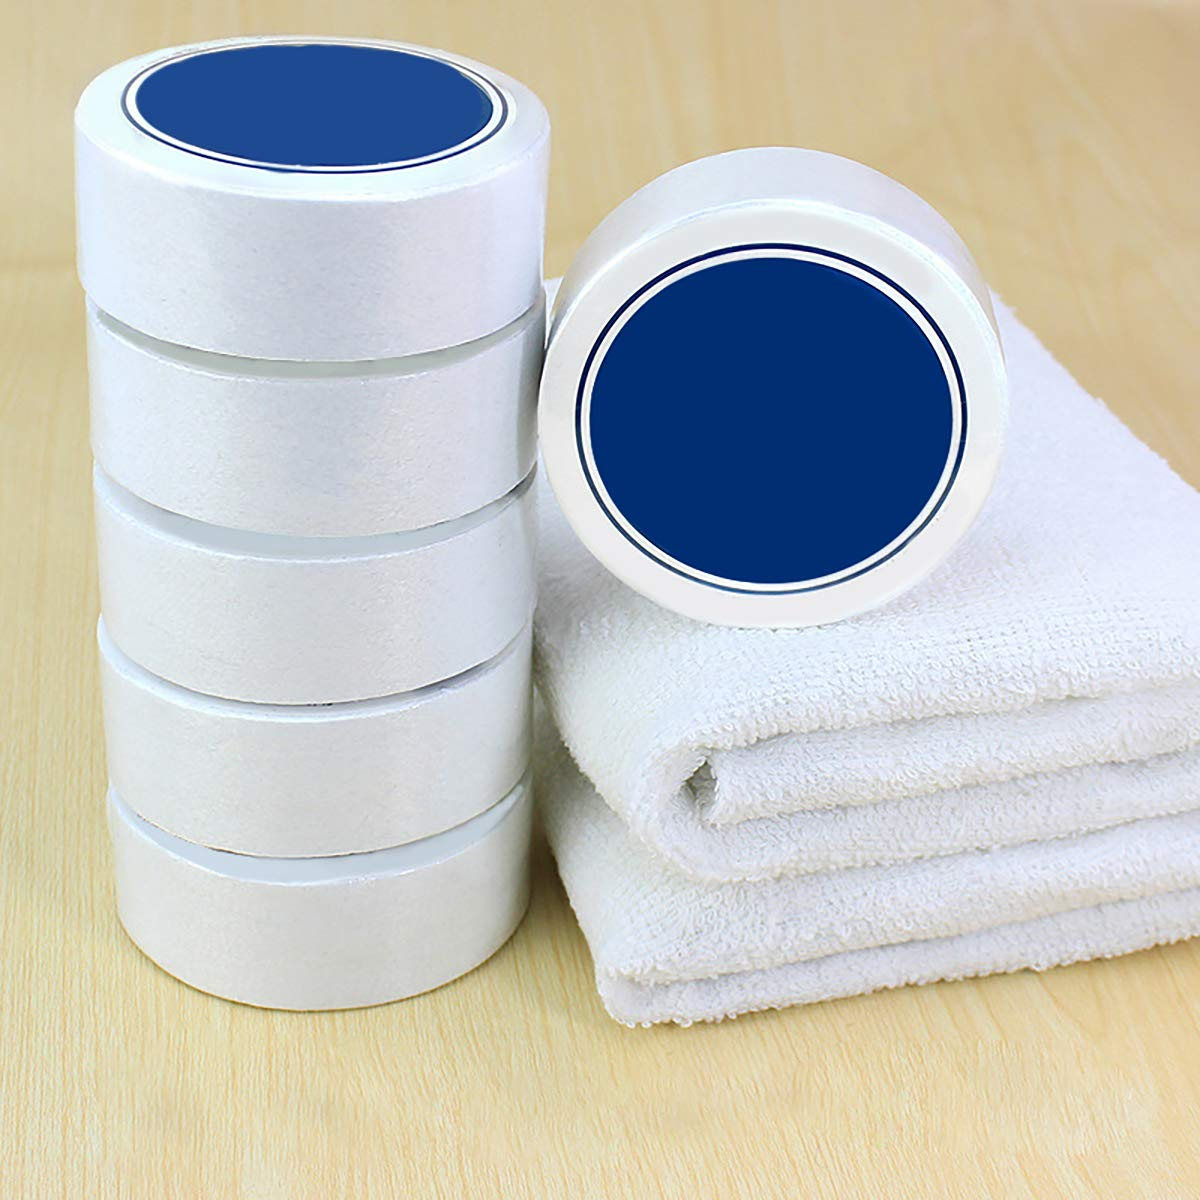 12 Pack Cotton Compressed Towels White Reusable Compressed Towels Tablets